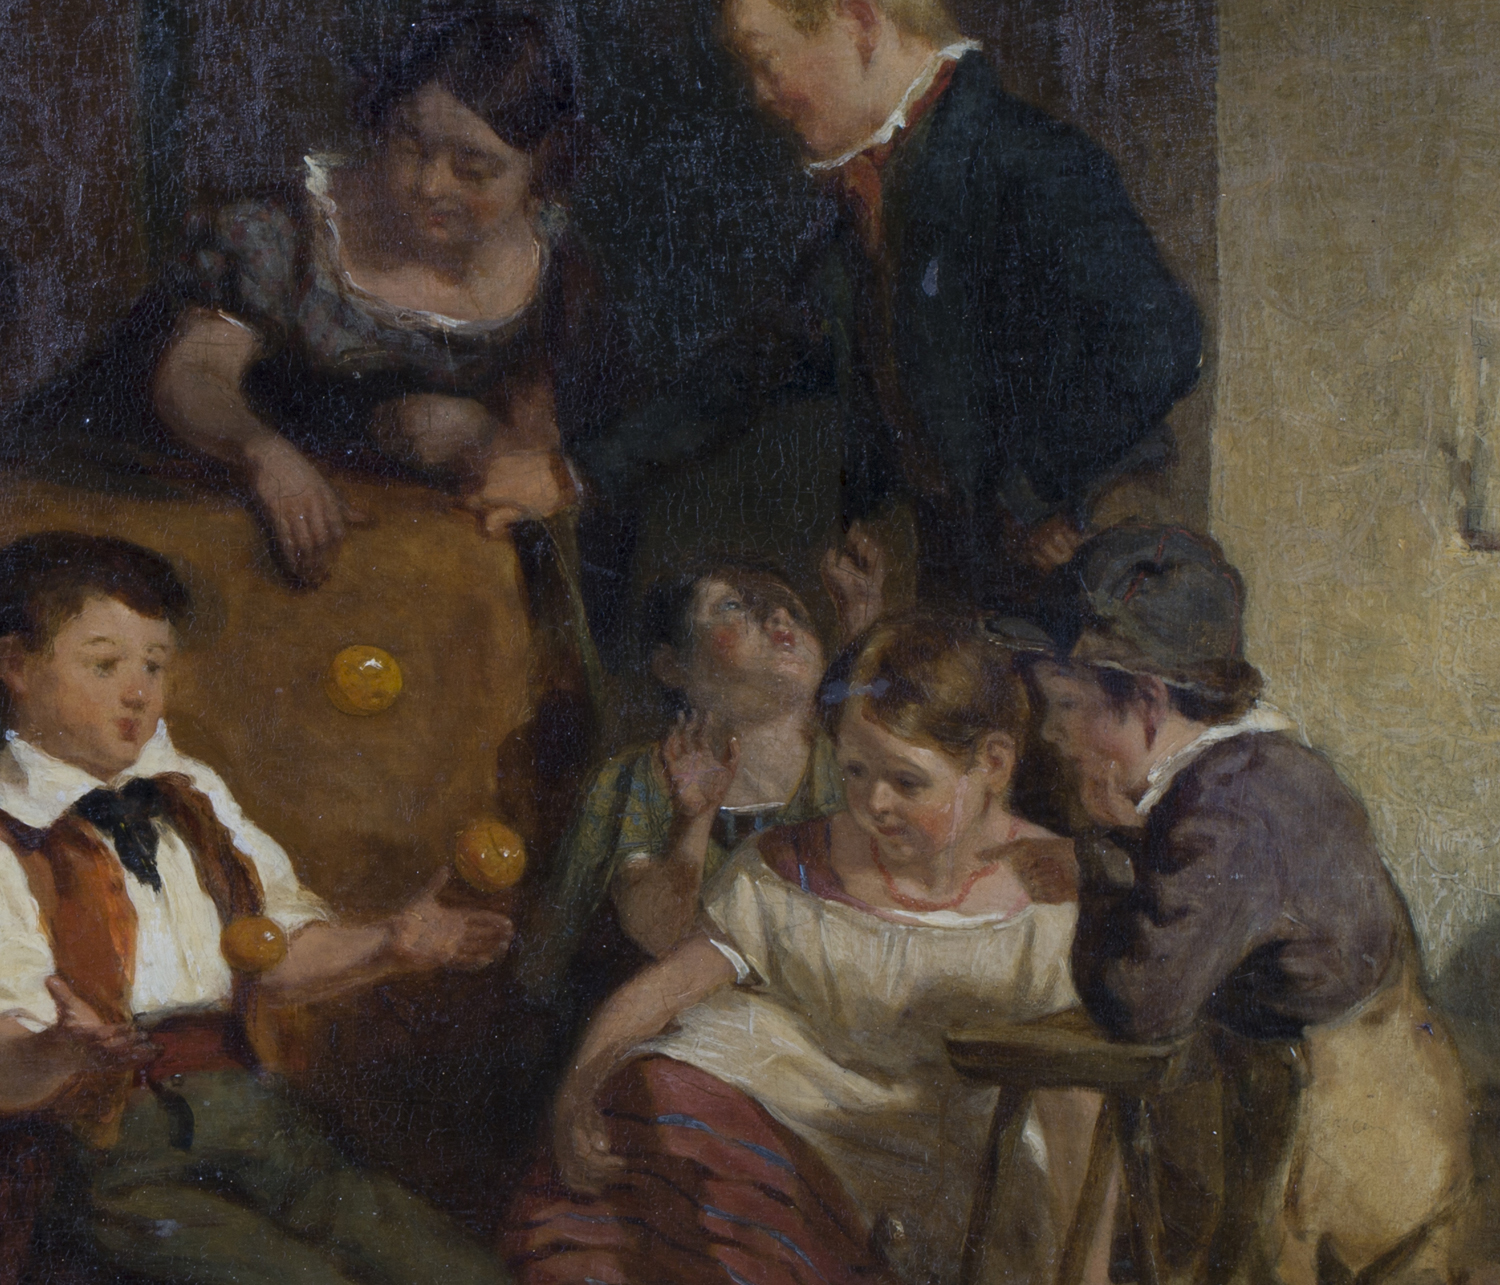 Lot 60 - Circle of David Wilkie - A Family Group in an Interior, 19th century oil on panel, 34.5cm x 27.